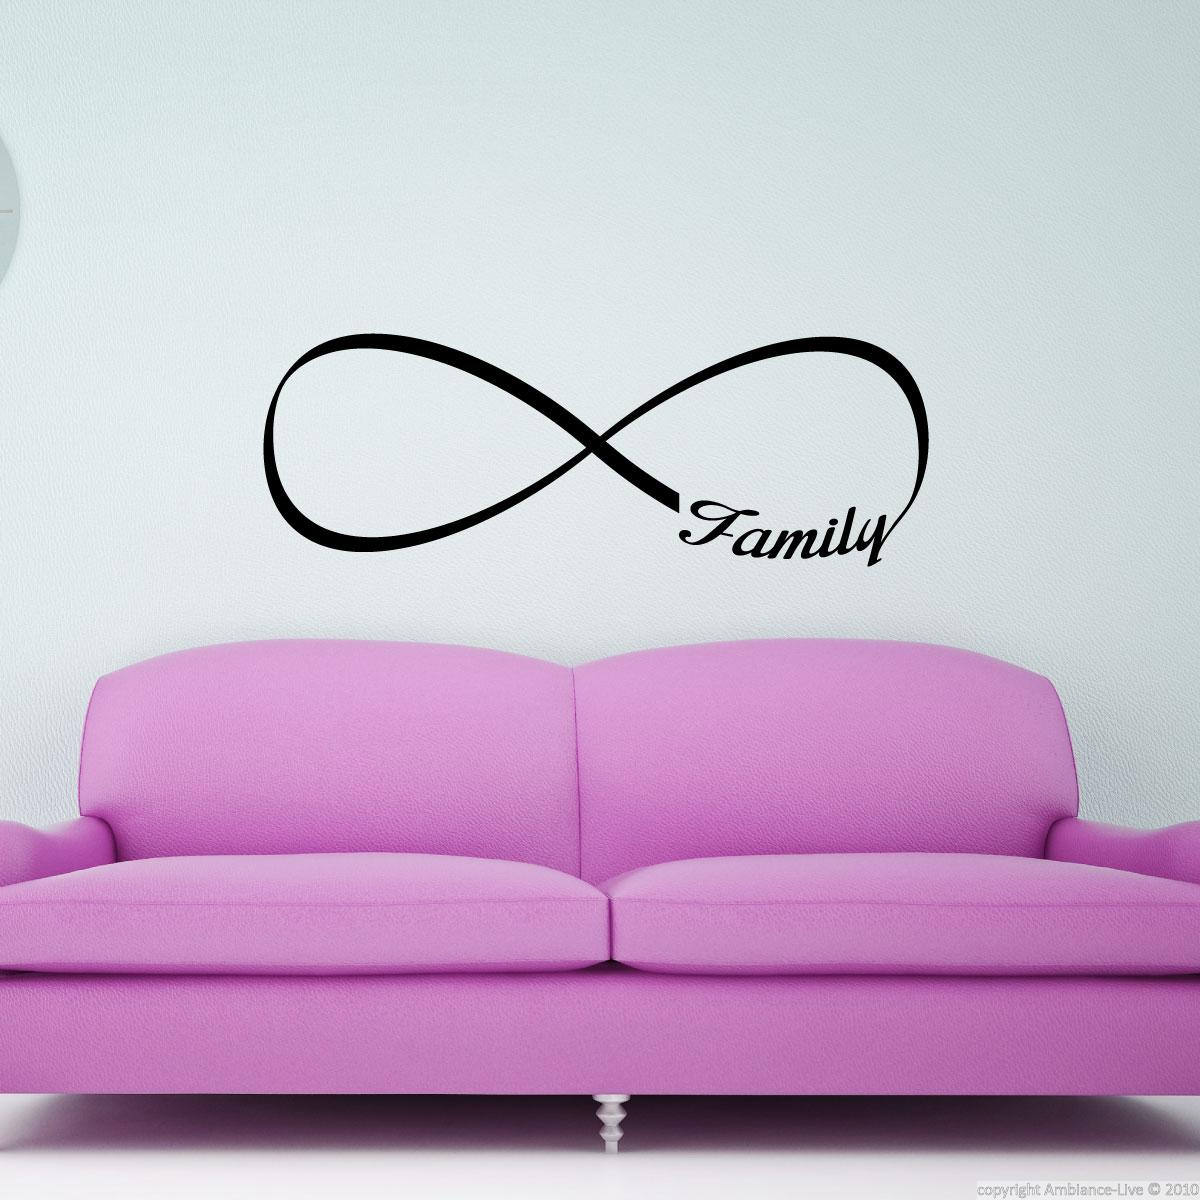 wandtattoos spr che wandtattoo familie in der. Black Bedroom Furniture Sets. Home Design Ideas